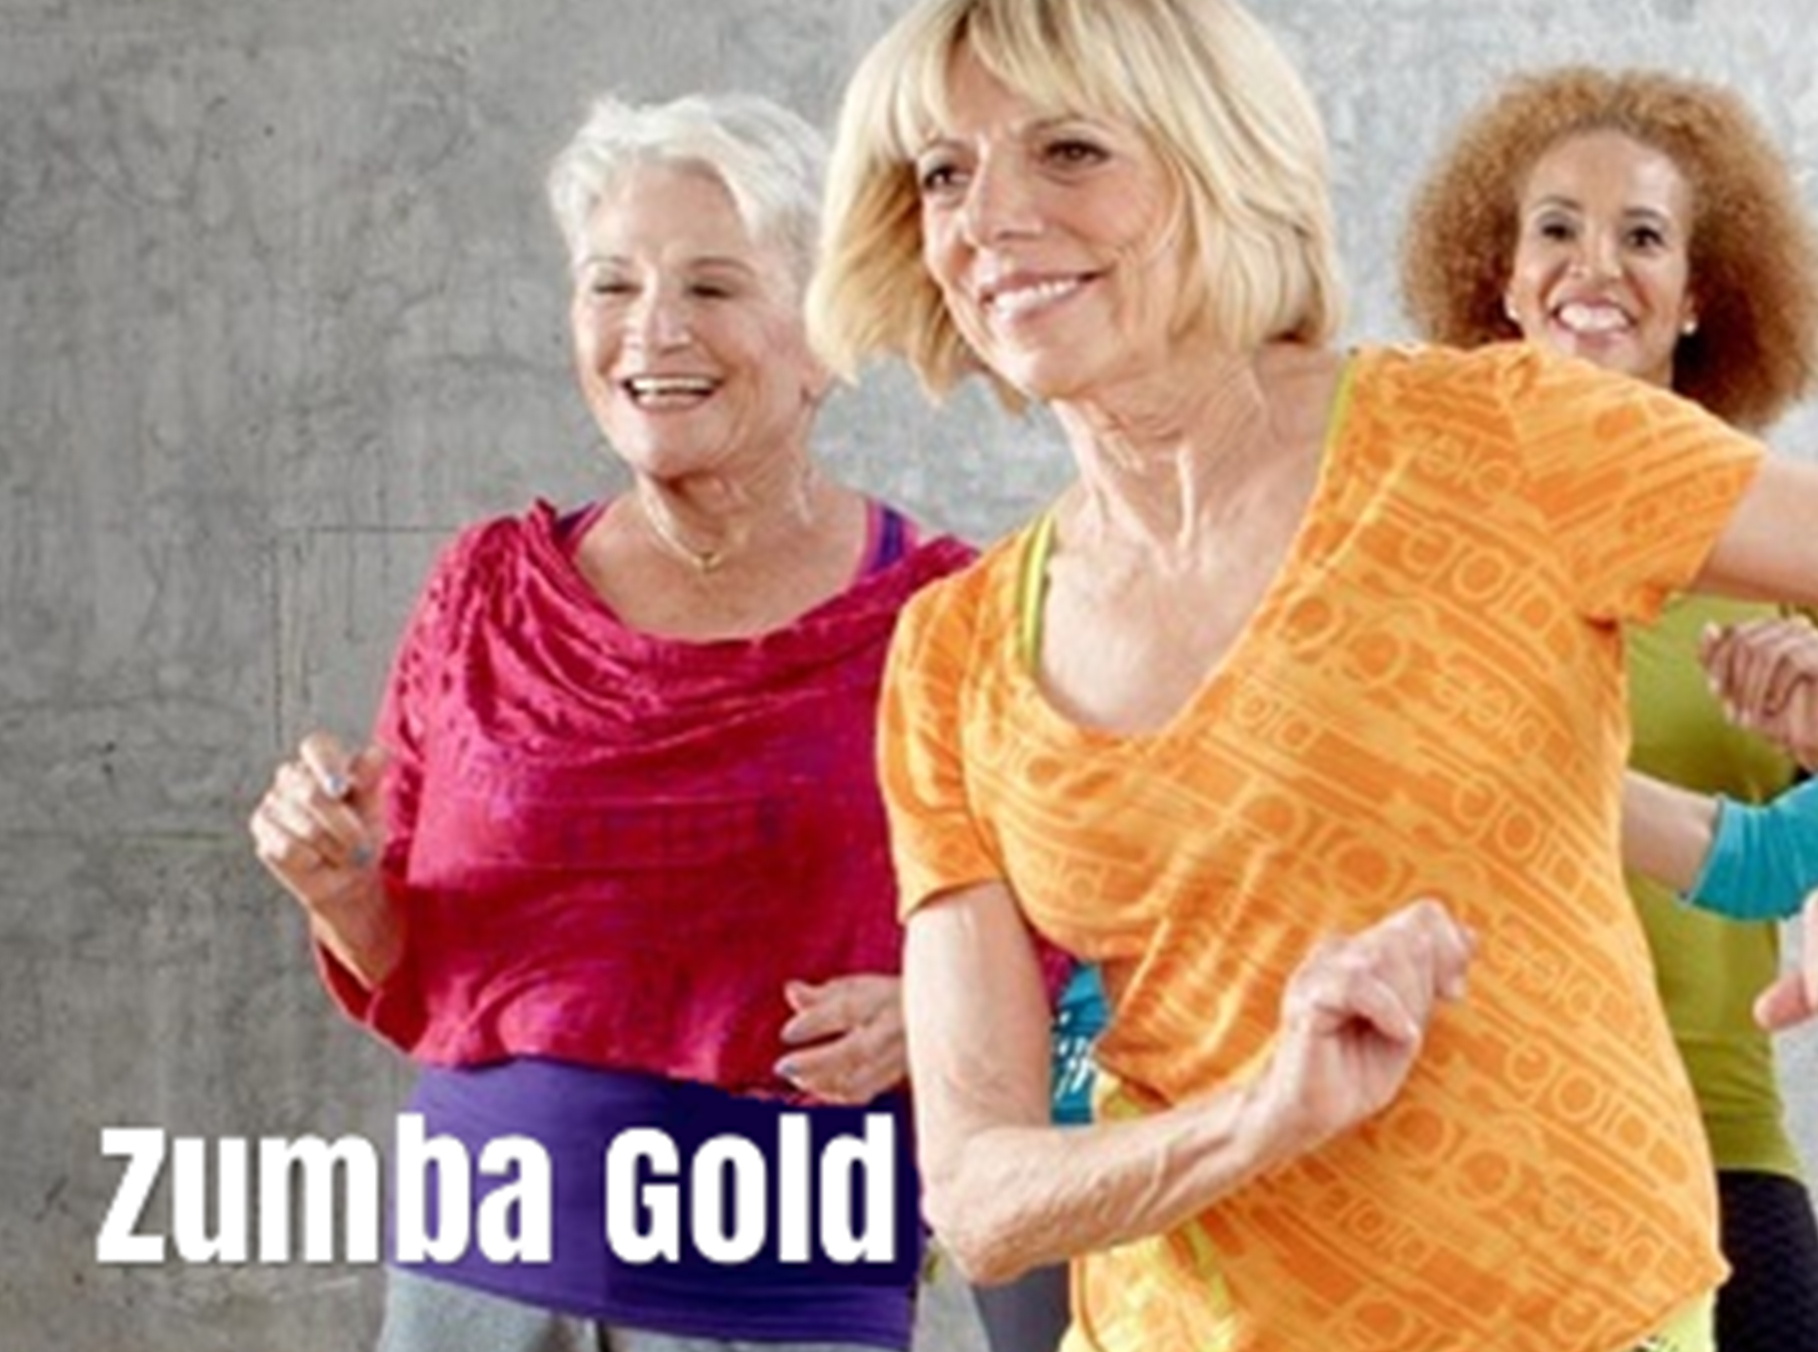 Zumba gold (séniors)